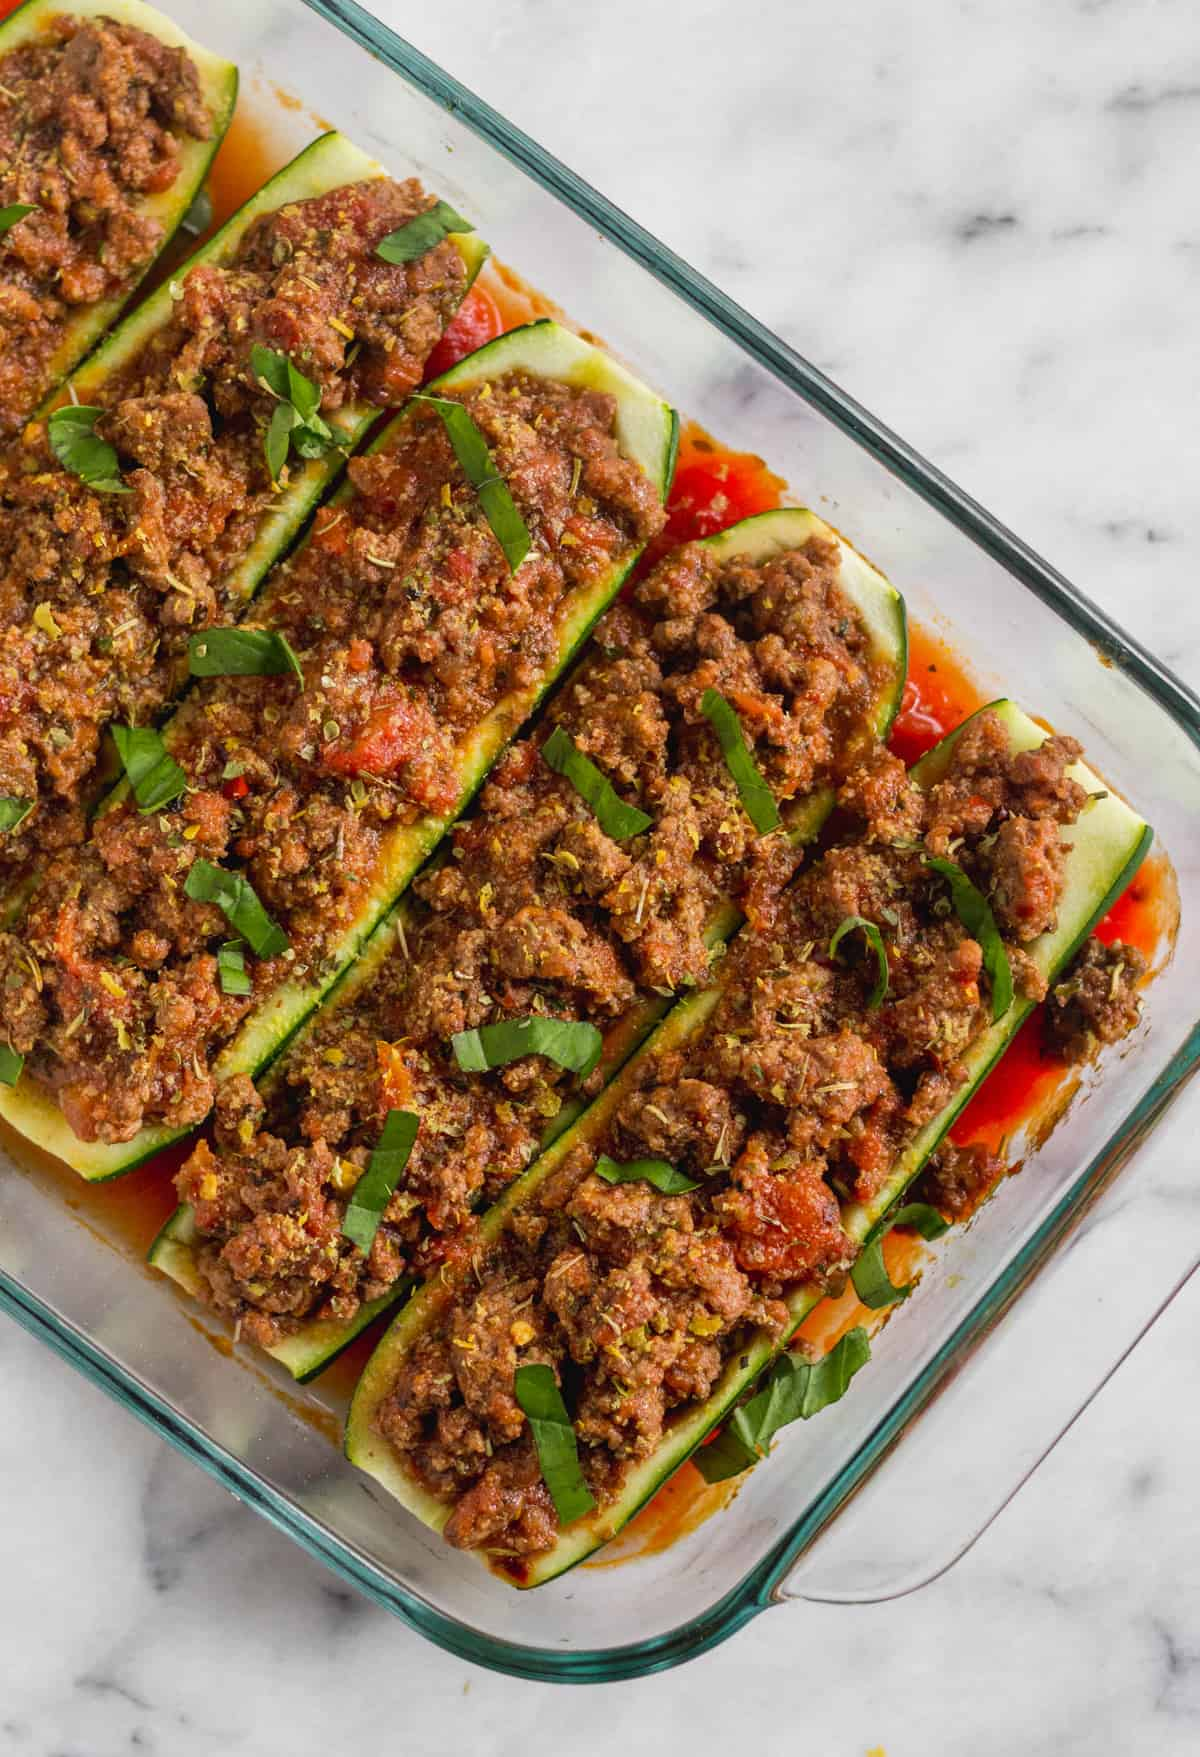 Pan filled with zucchini boats stuffed with Italian seasoned beef and tomato sauce topped with fresh basil